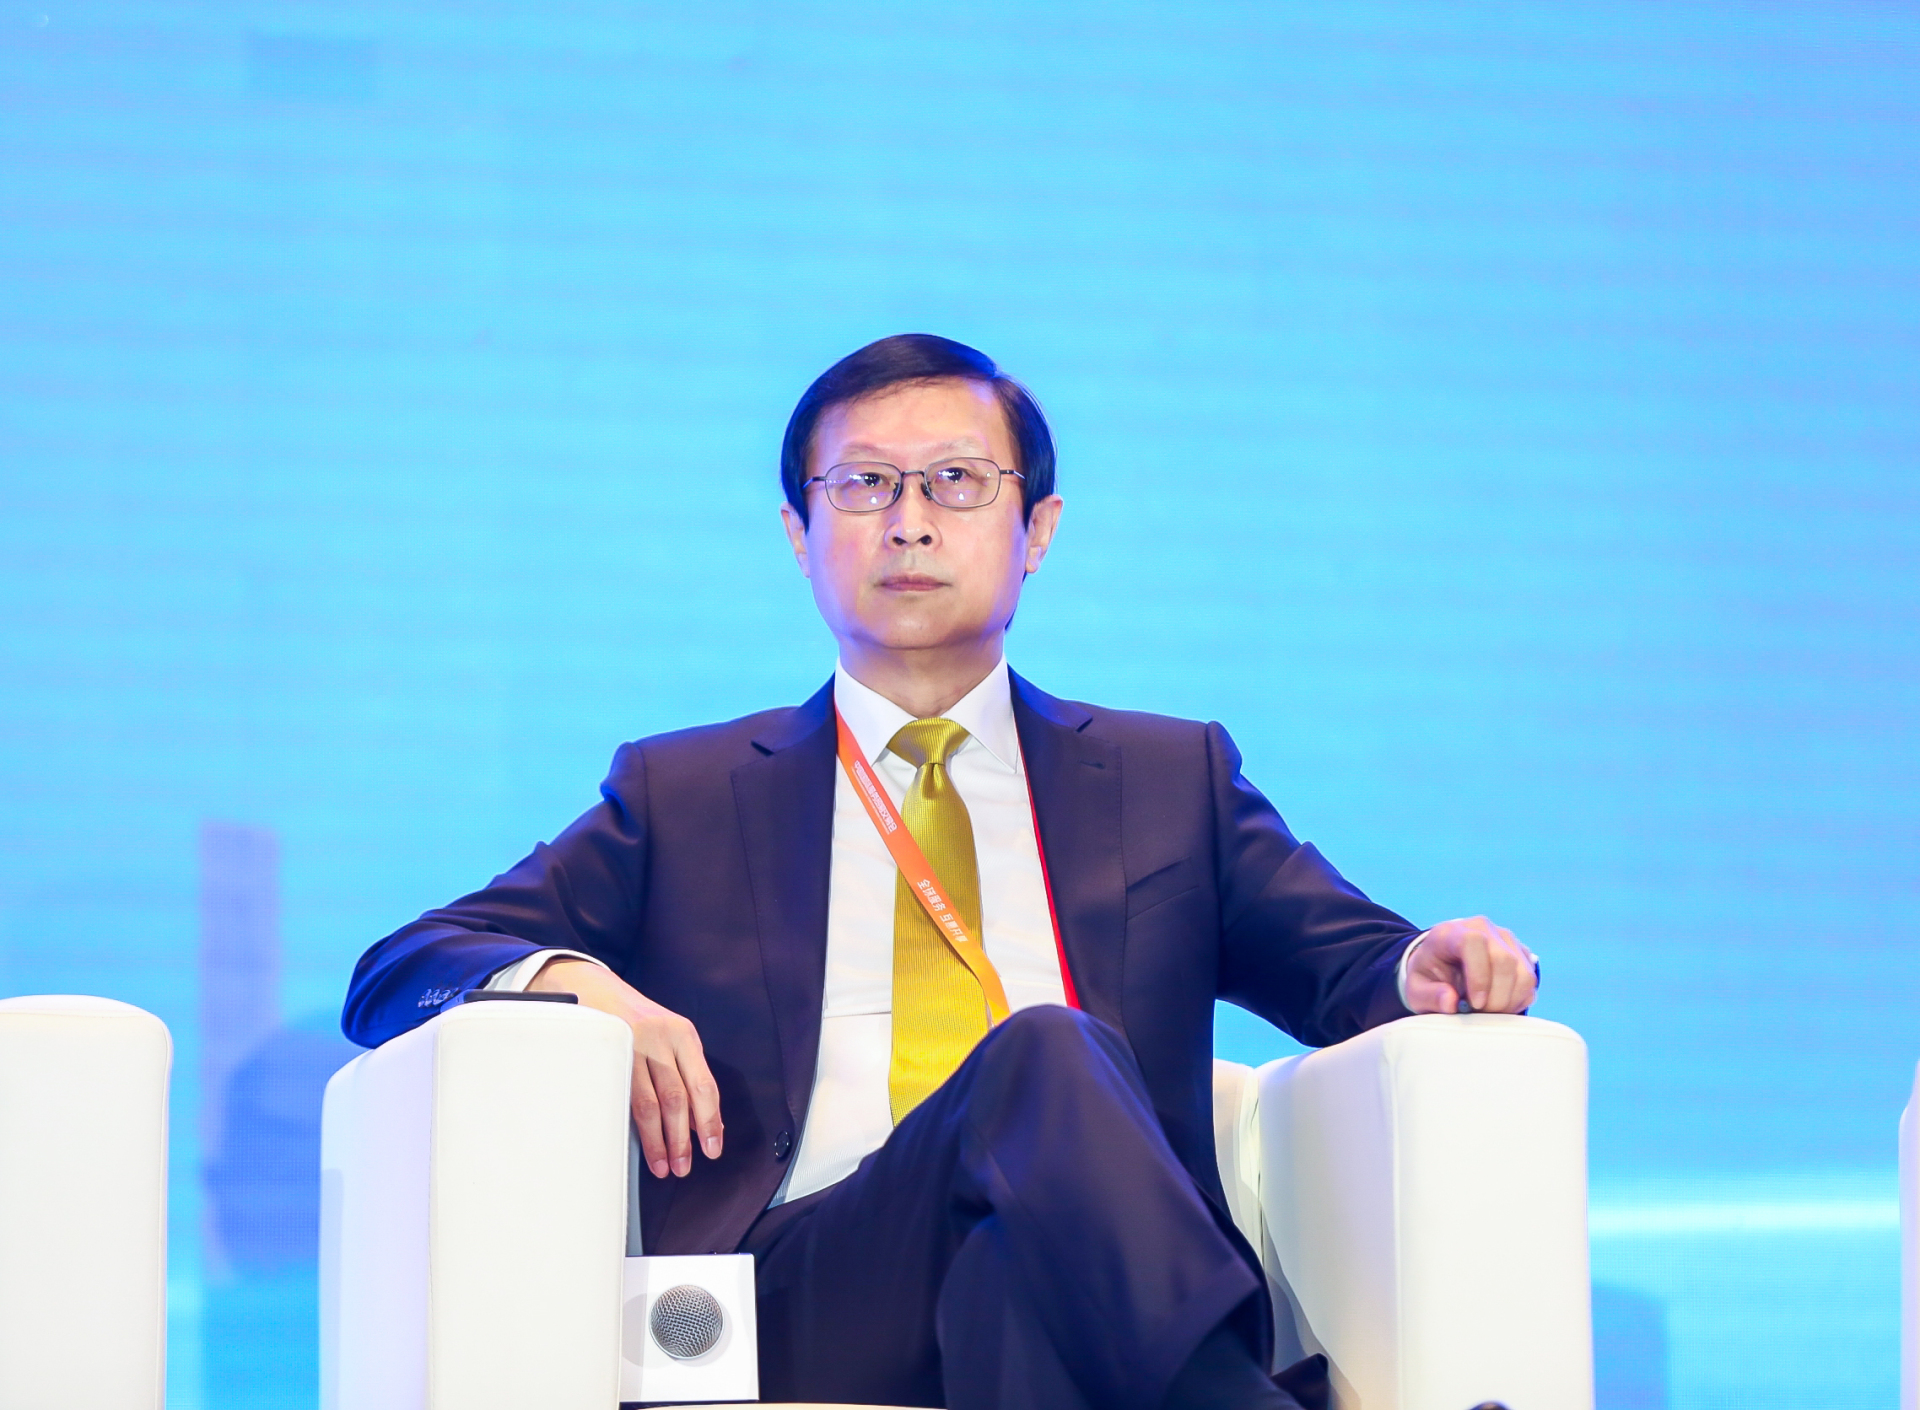 Eddie Chen, Managing Director and Head of China & Asia, EURAZEO